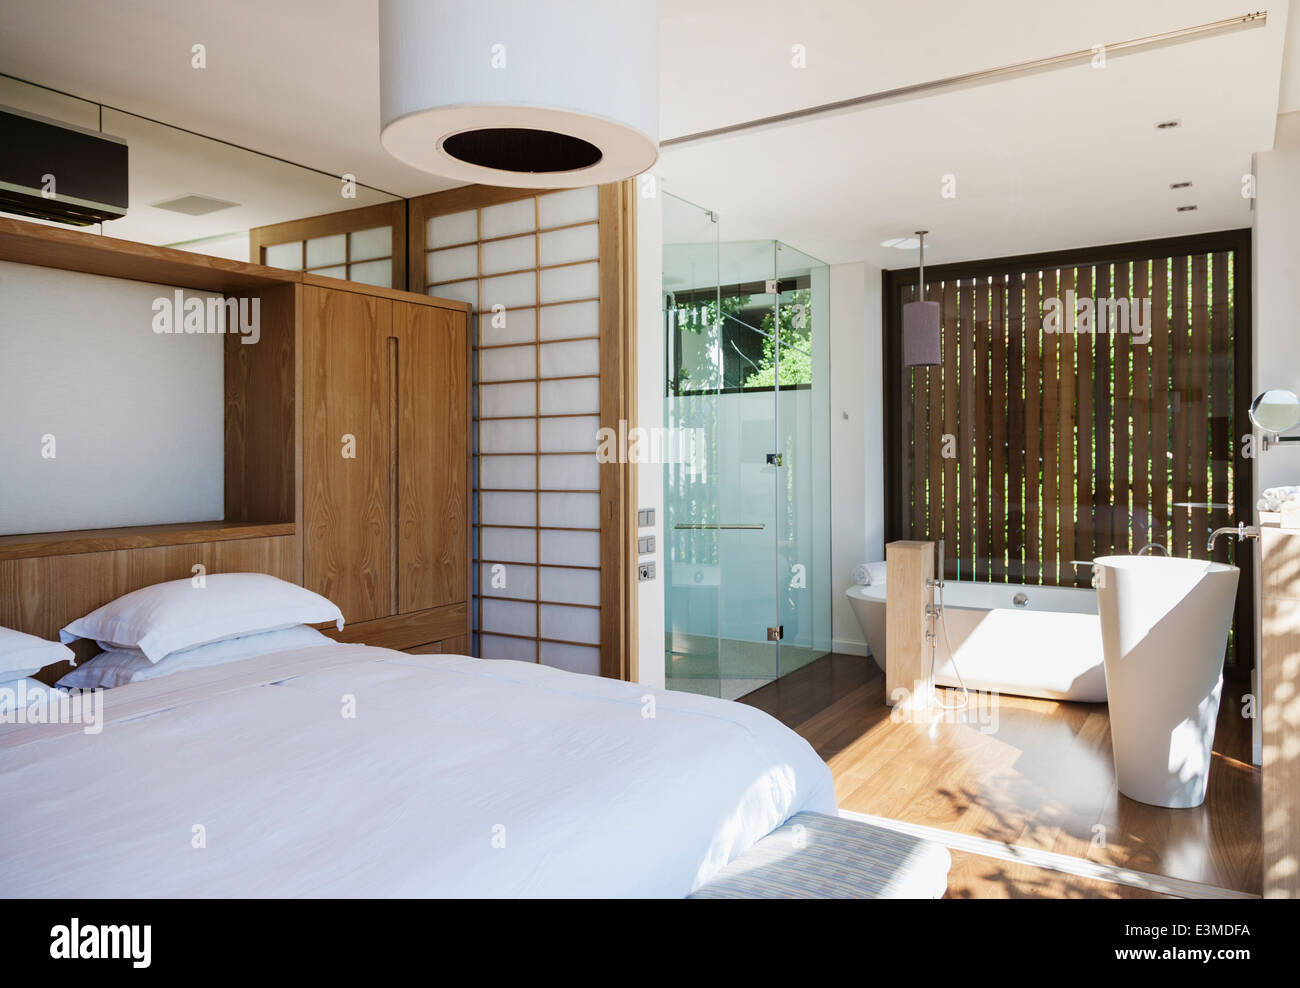 luxus schlafzimmer und bad en suite stockfoto bild 71135102 alamy. Black Bedroom Furniture Sets. Home Design Ideas